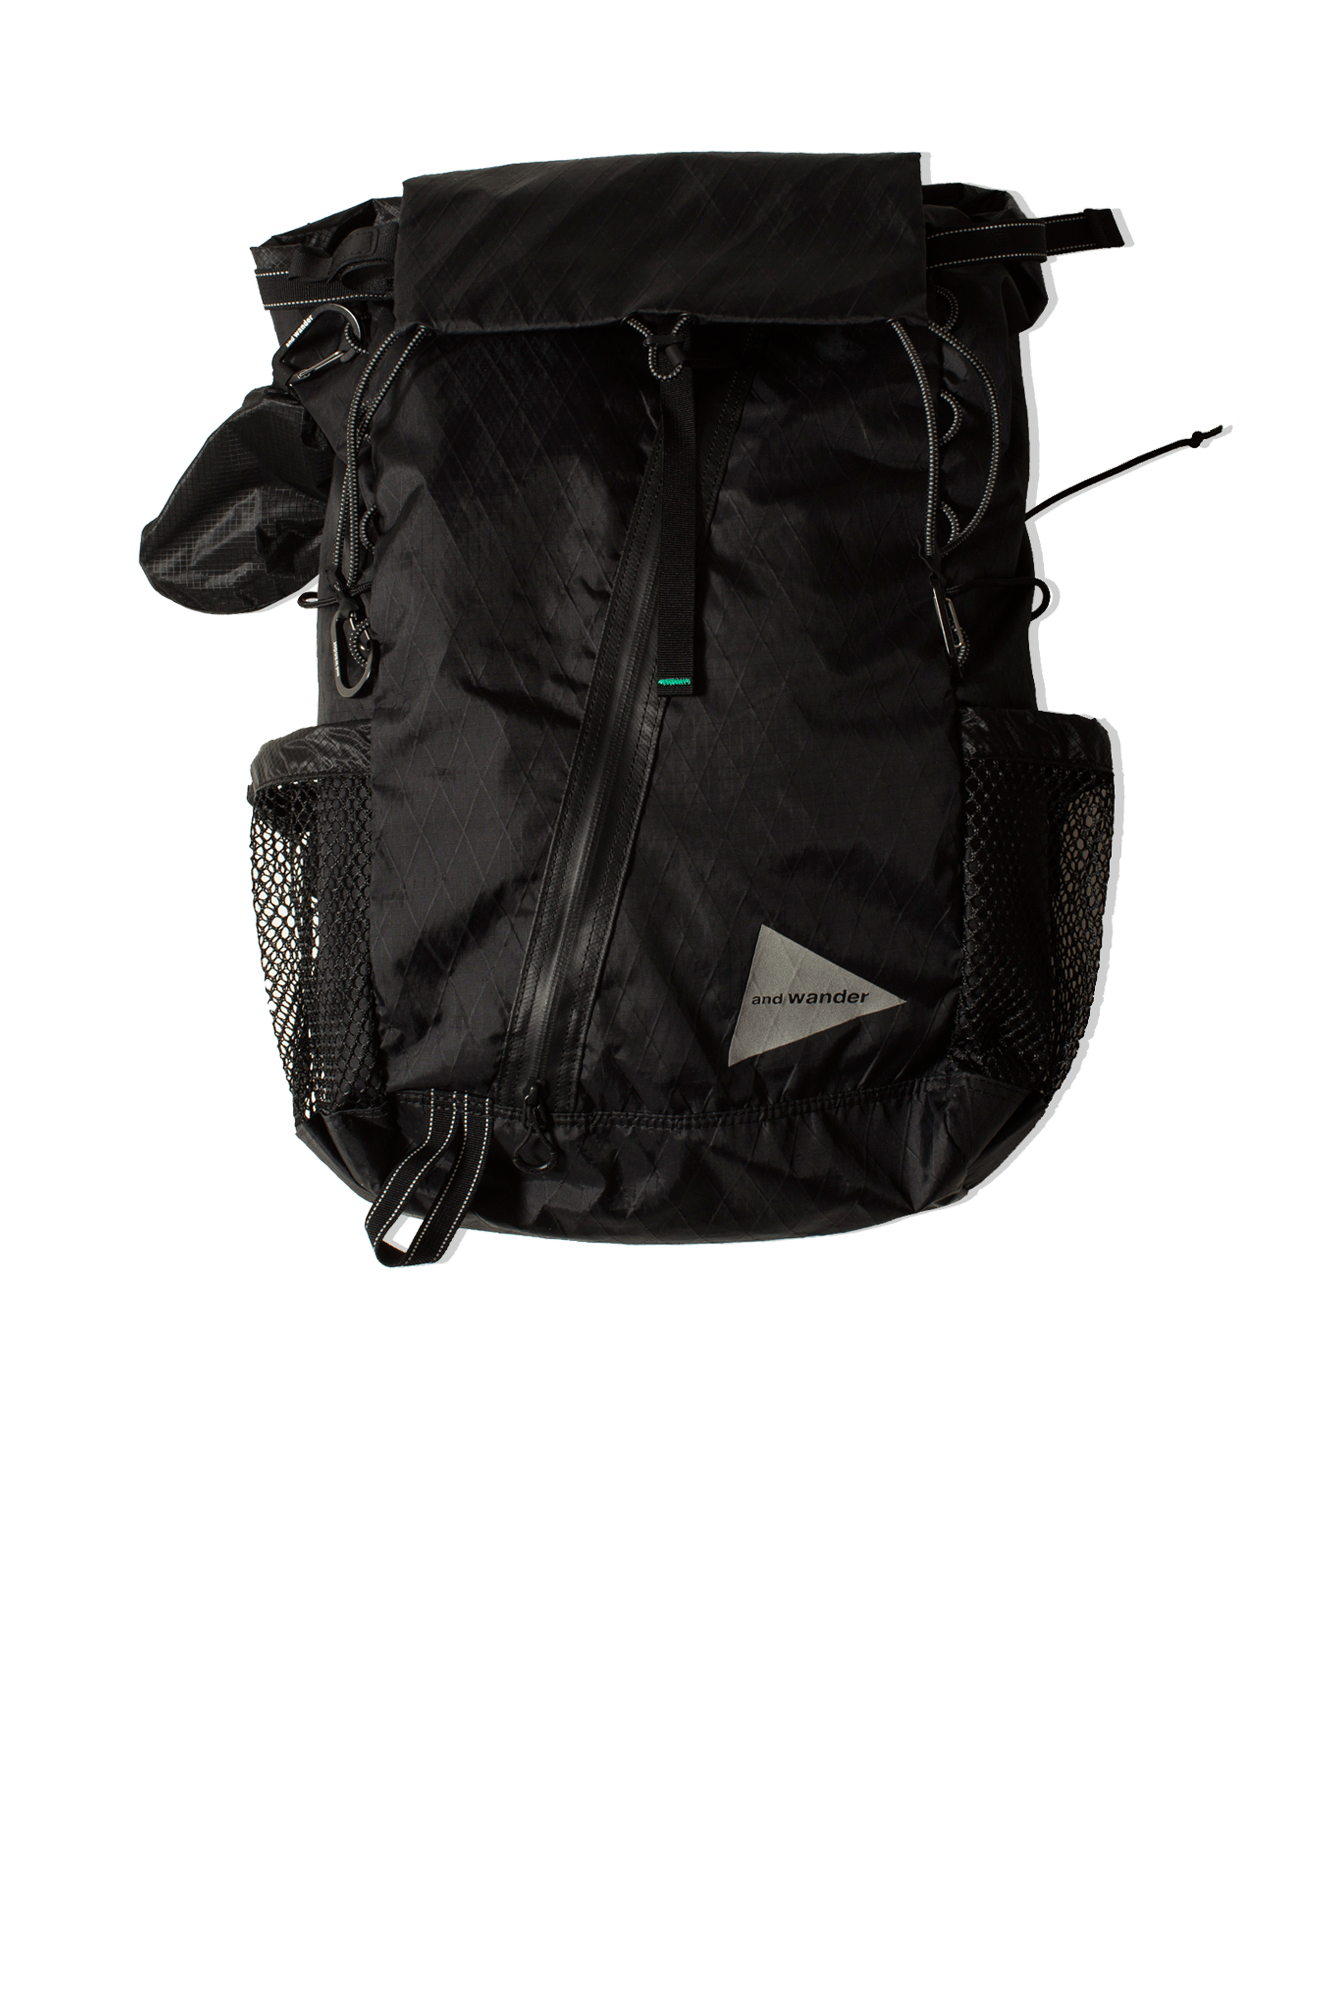 And Wander Backpacks X-Pac 30L Backpack Black 5740975008#000#BLK#OS - One Block Down